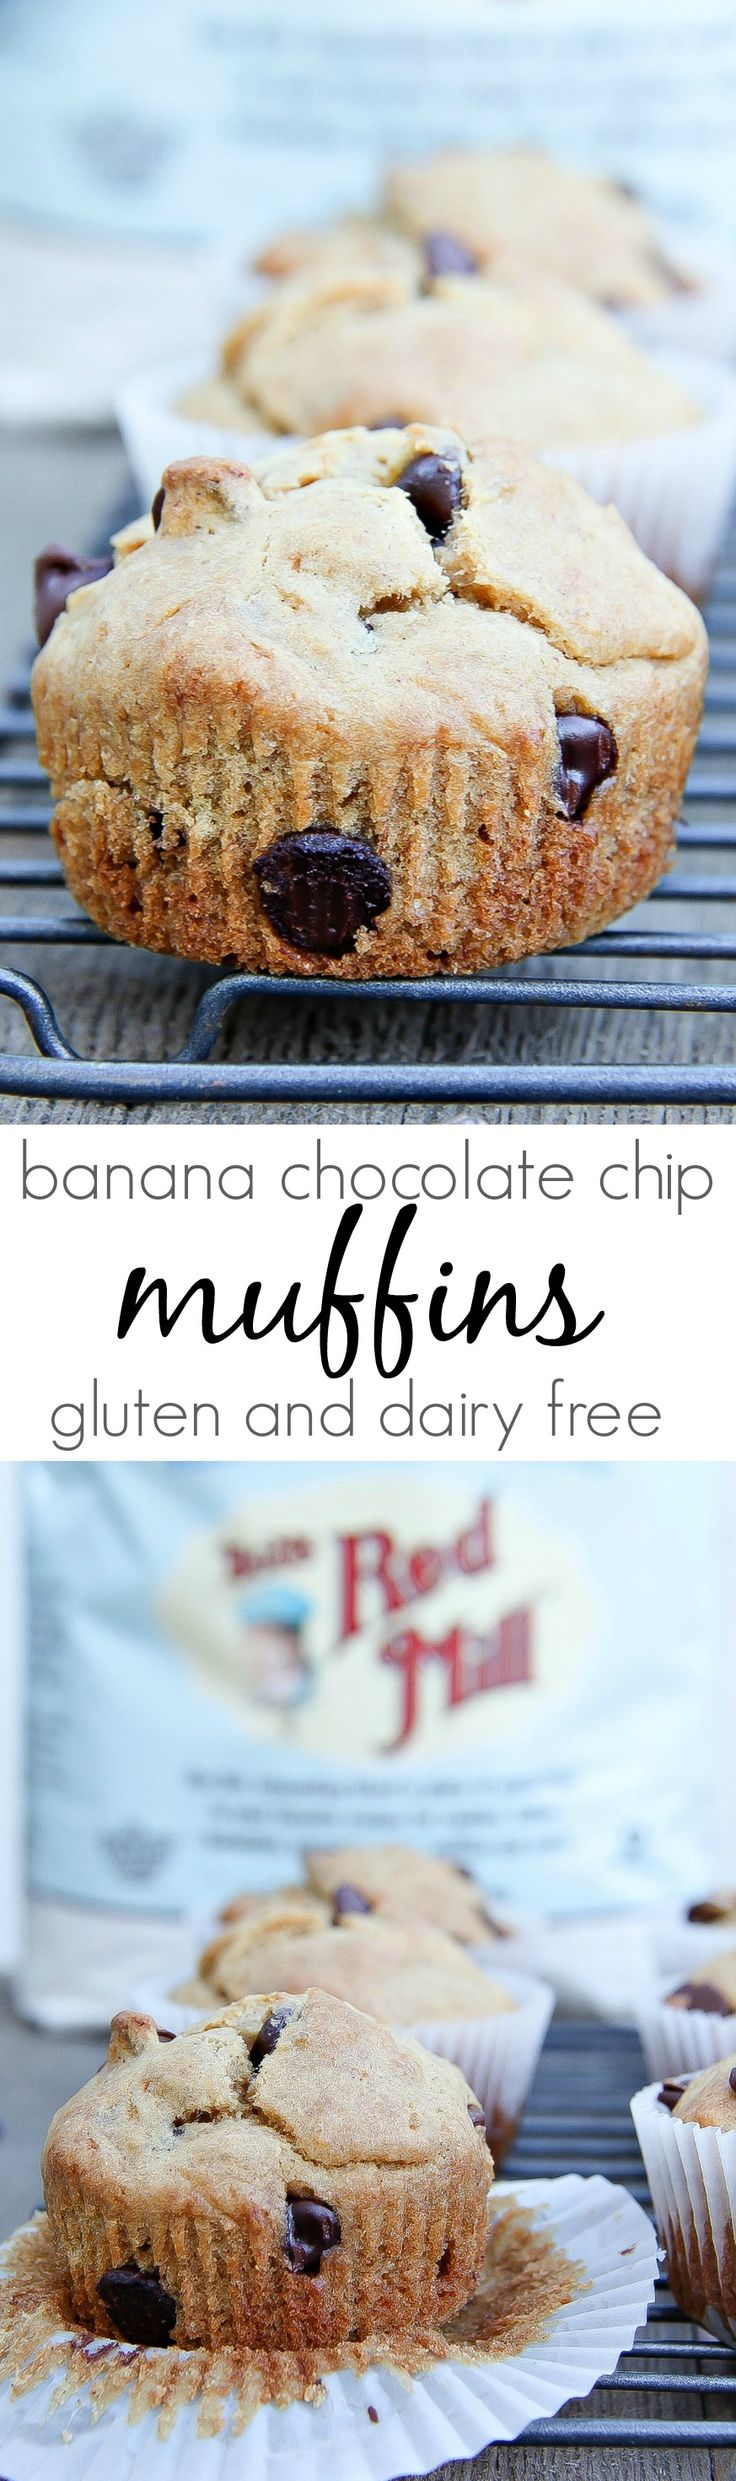 Gluten-Free Banana Chocolate Chip Muffins Recipe on the Blog: BobsSpringBaking AD @BobsRedMill healthy eating, gluten free, non Dairy Homemade